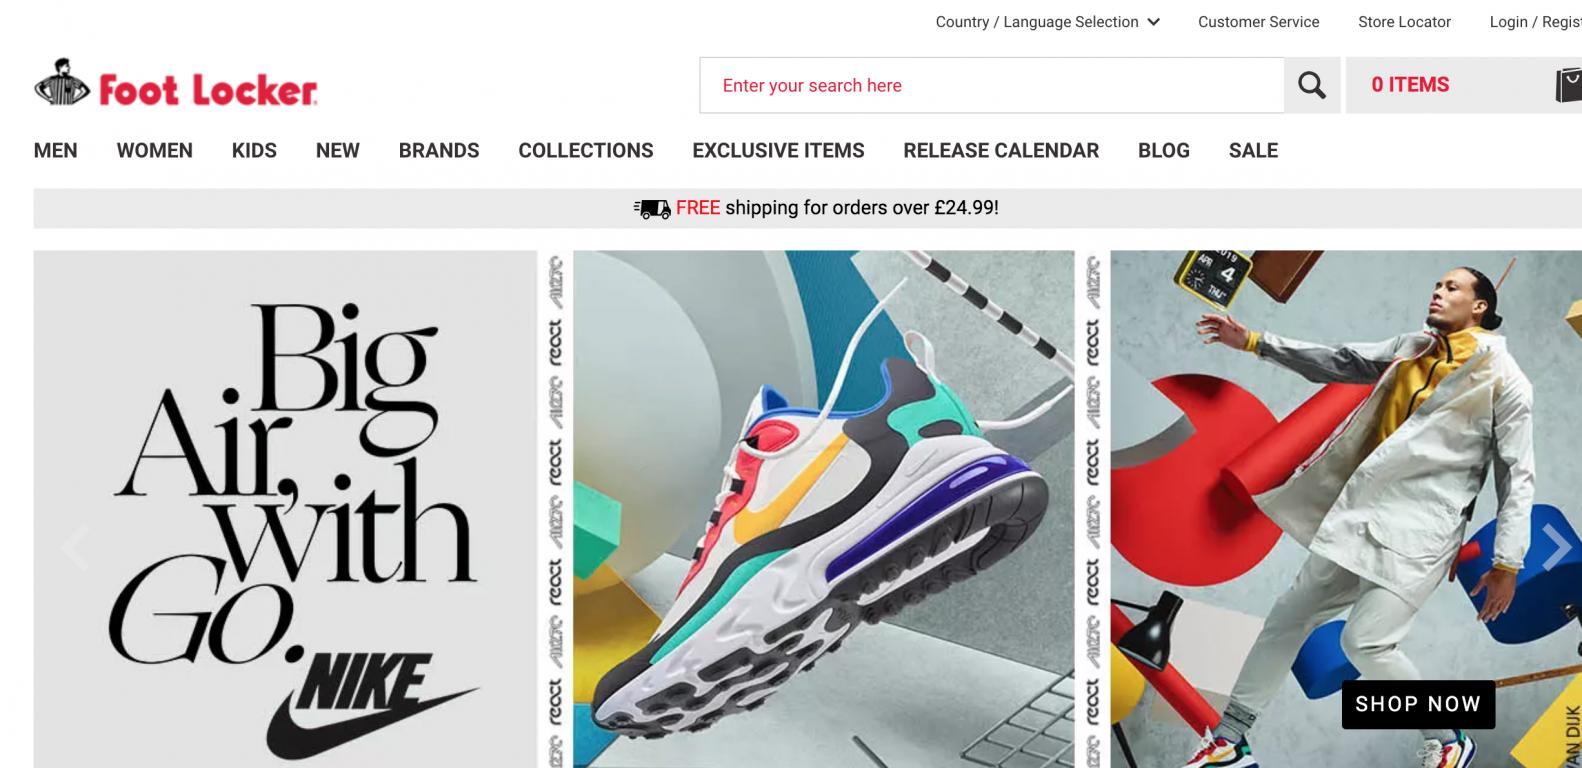 Foot Locker UK website screenshot